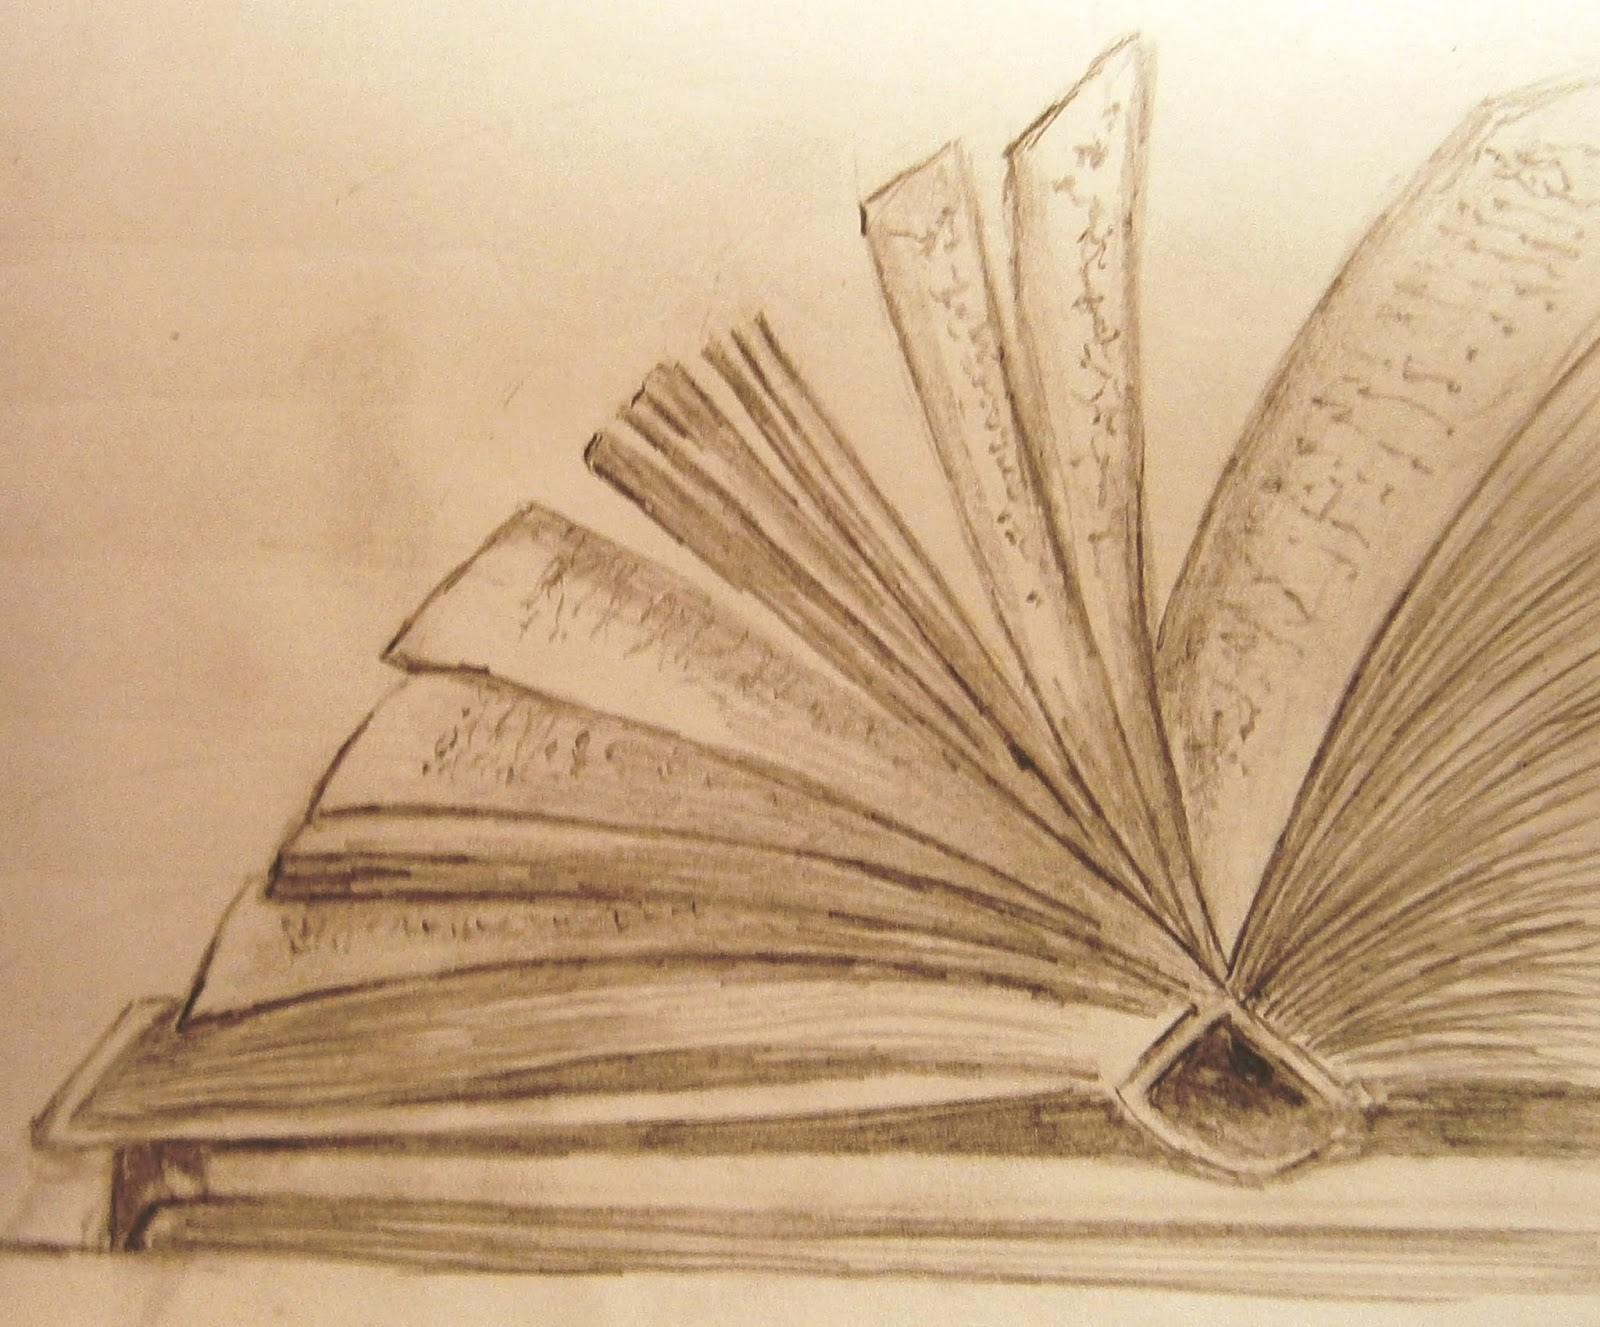 Open book pencil sketch